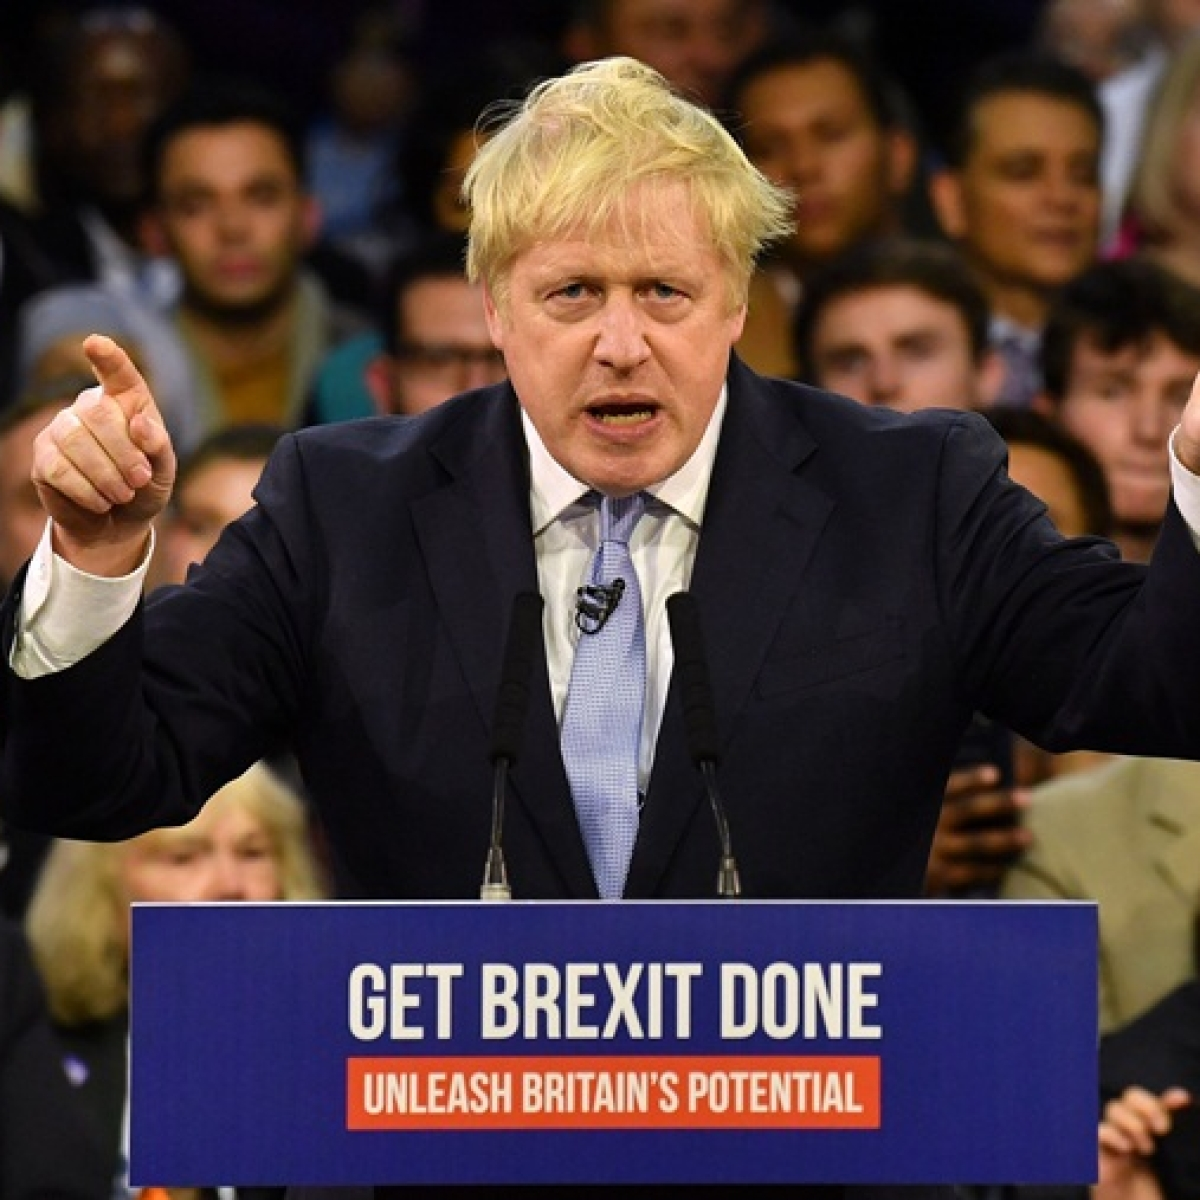 Boris Johnson set to win a clear majority in UK election, exit poll suggests